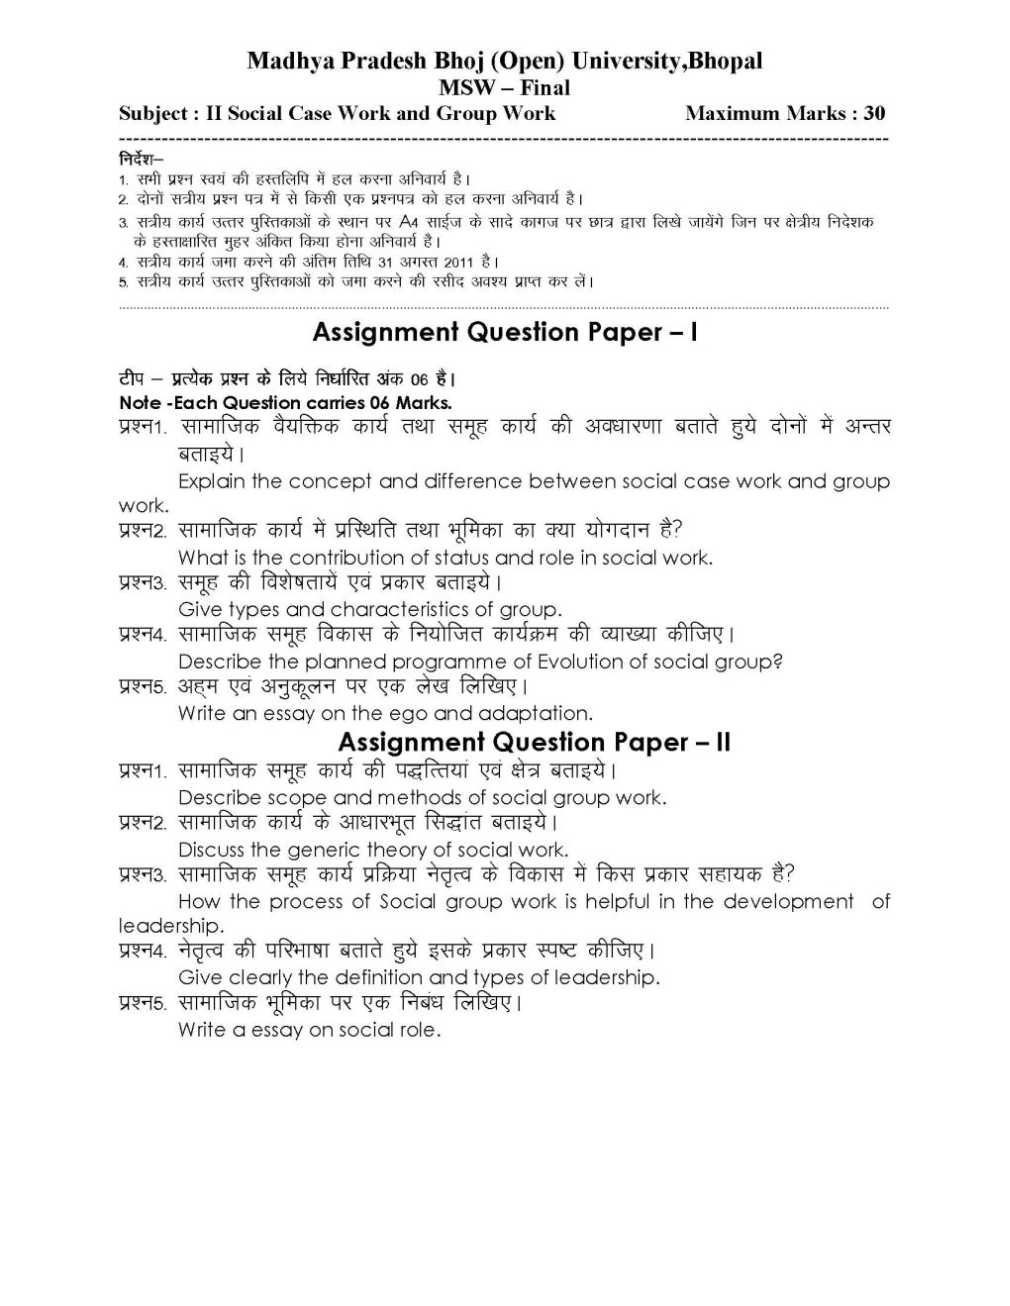 020 Essay Example Examples Of Definition Essays Bhoj University Bhopal Msw Impressive Abstract Topics Full